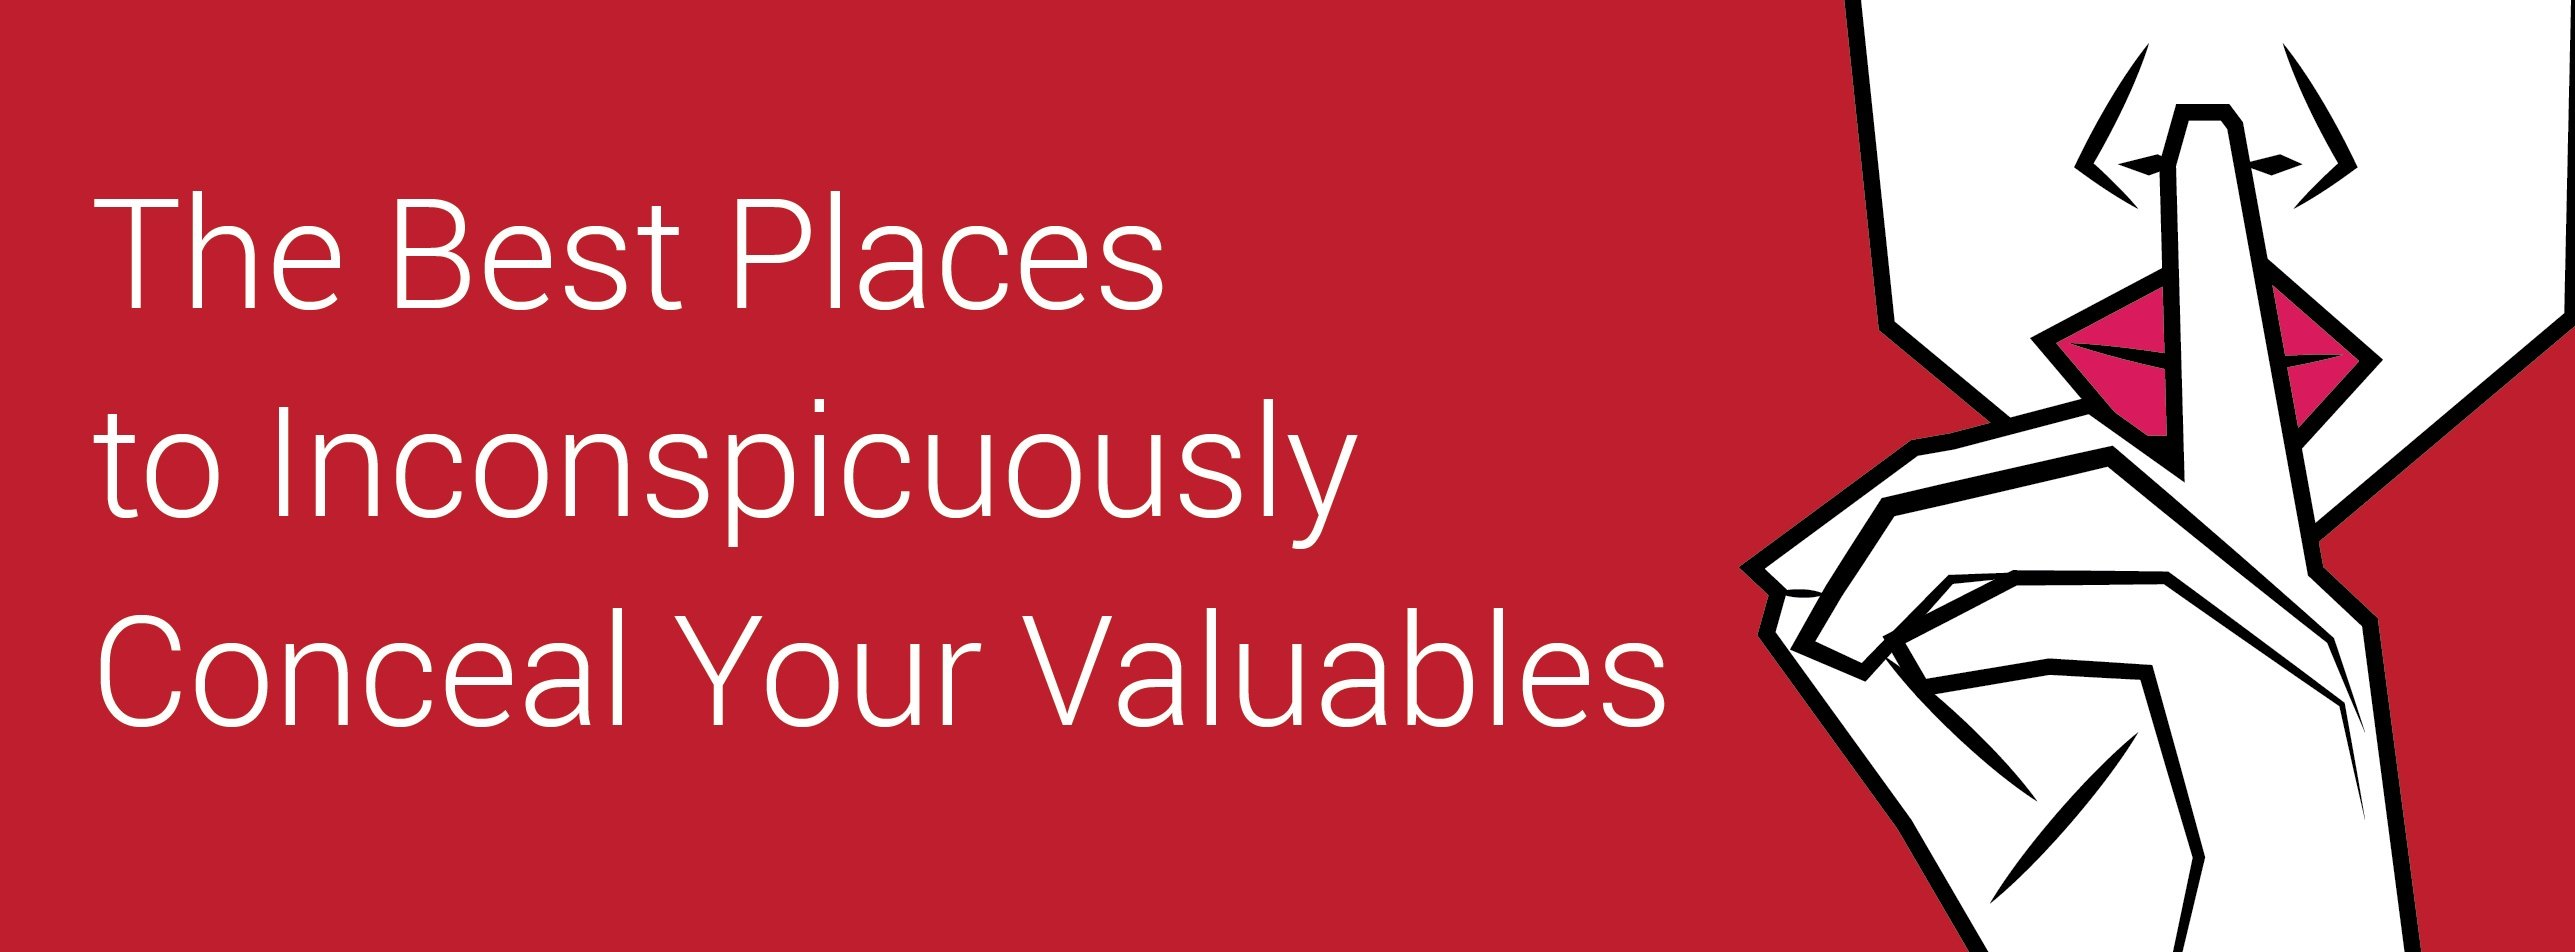 The Best Places to Hide Your Valuables